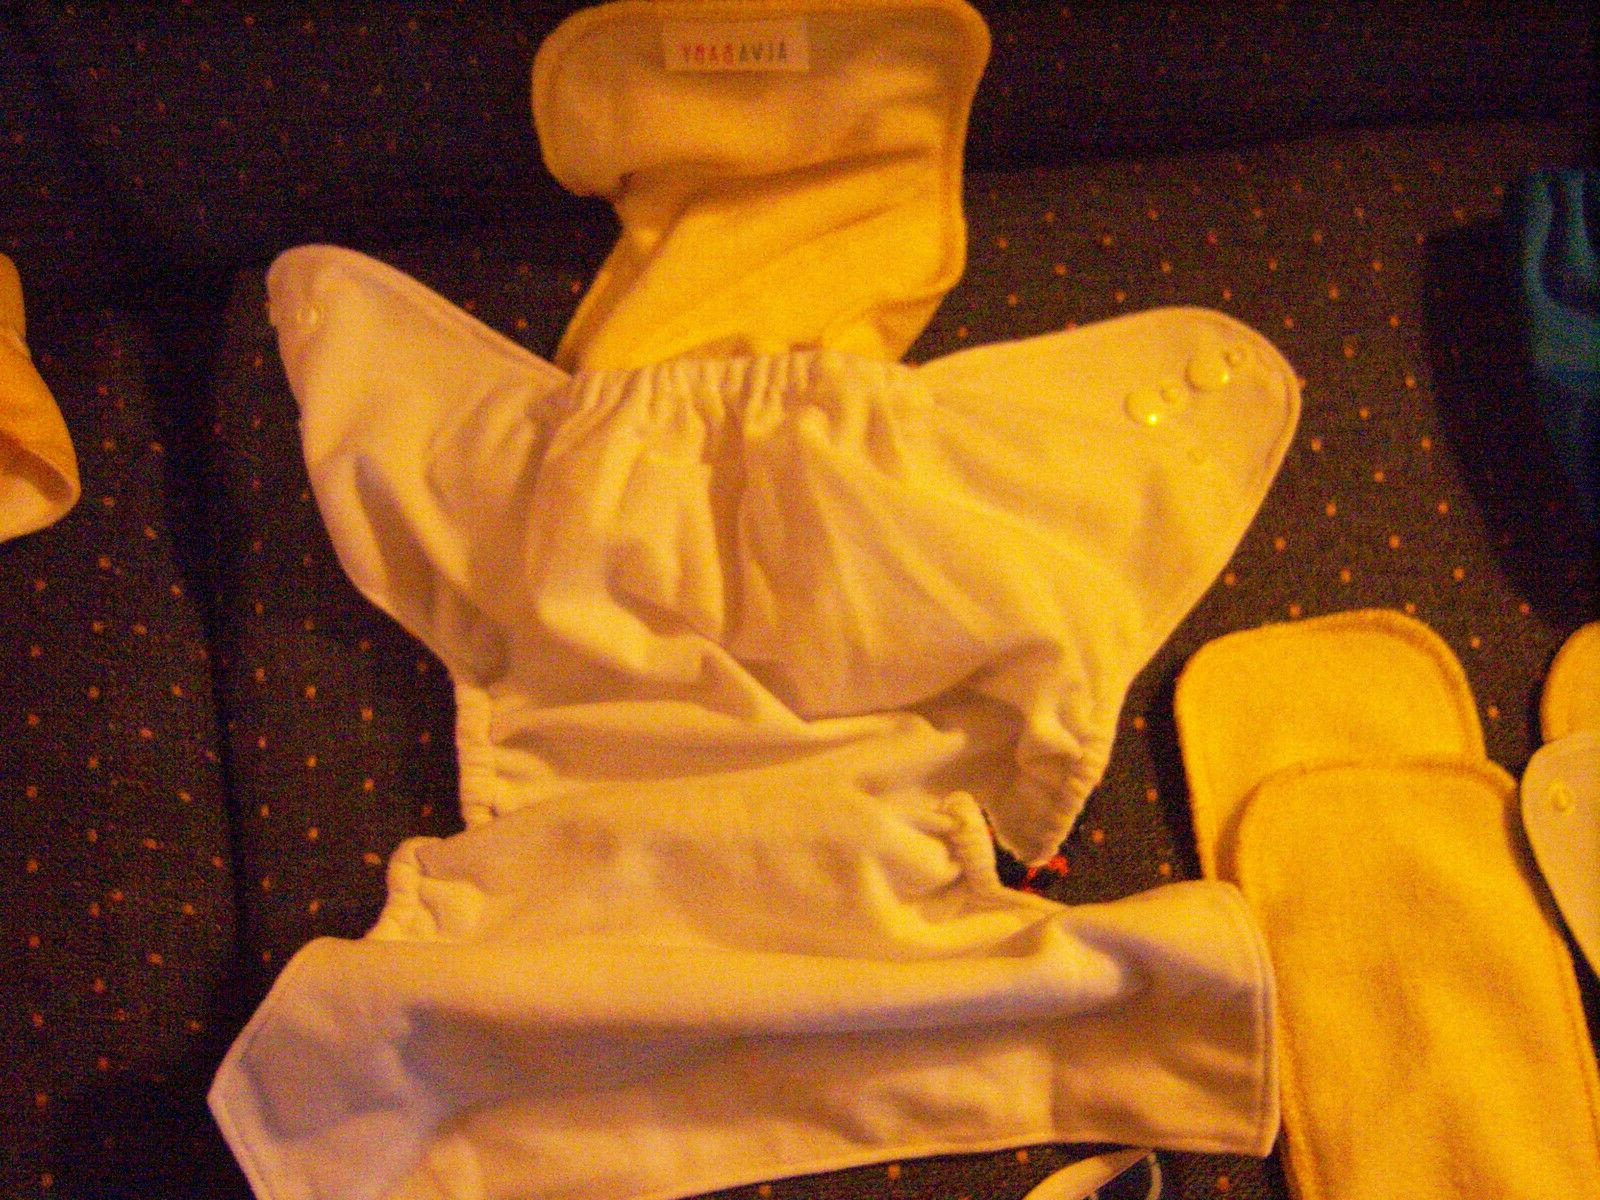 4 New Cloth All Diapers